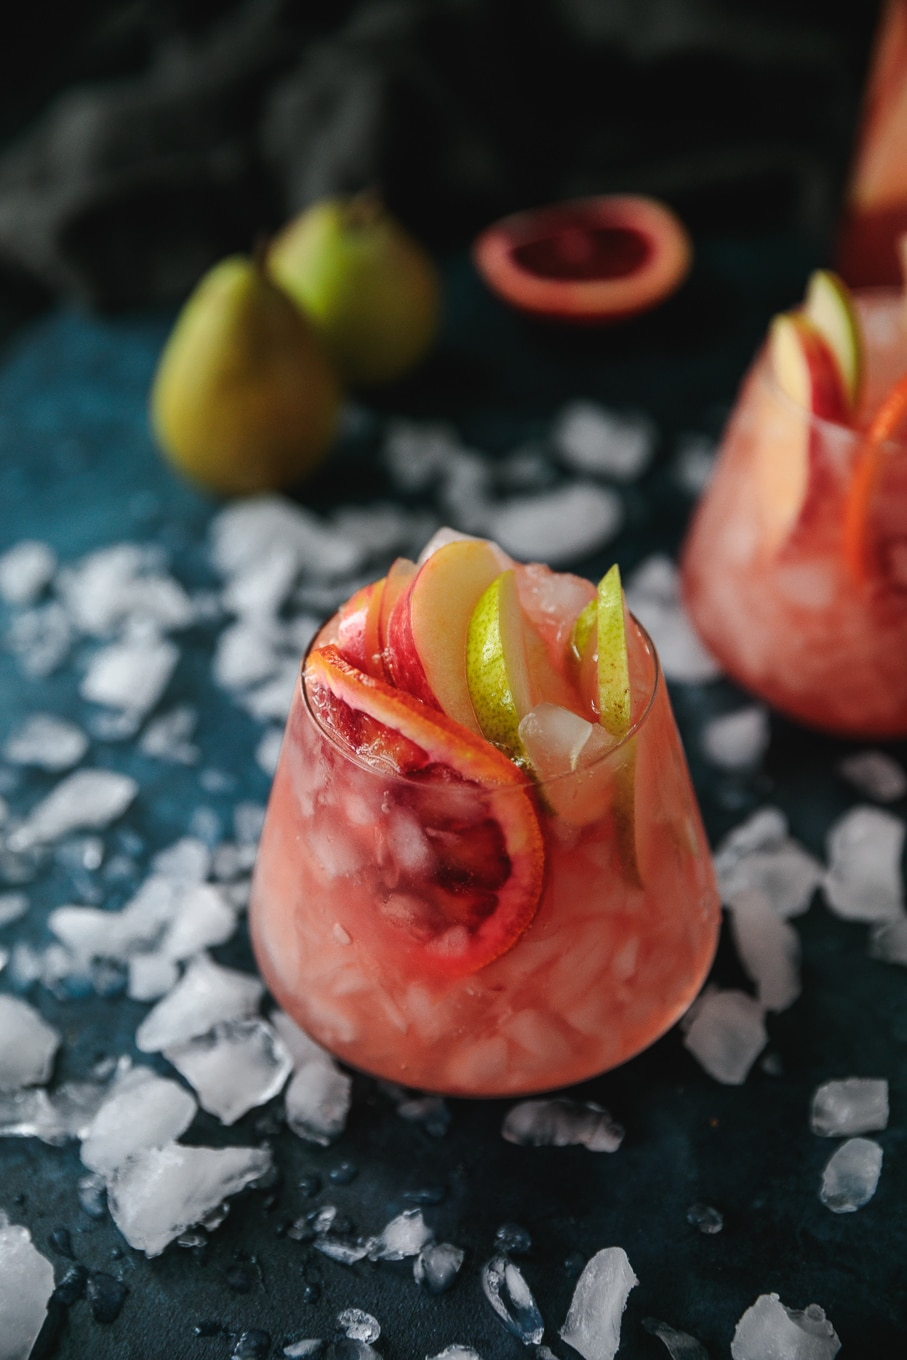 Close up shot of a glass of pink sparkling blood orange sangria with sliced apples, pears, and blood oranges sticking out against a blue background scattered with crushed ice